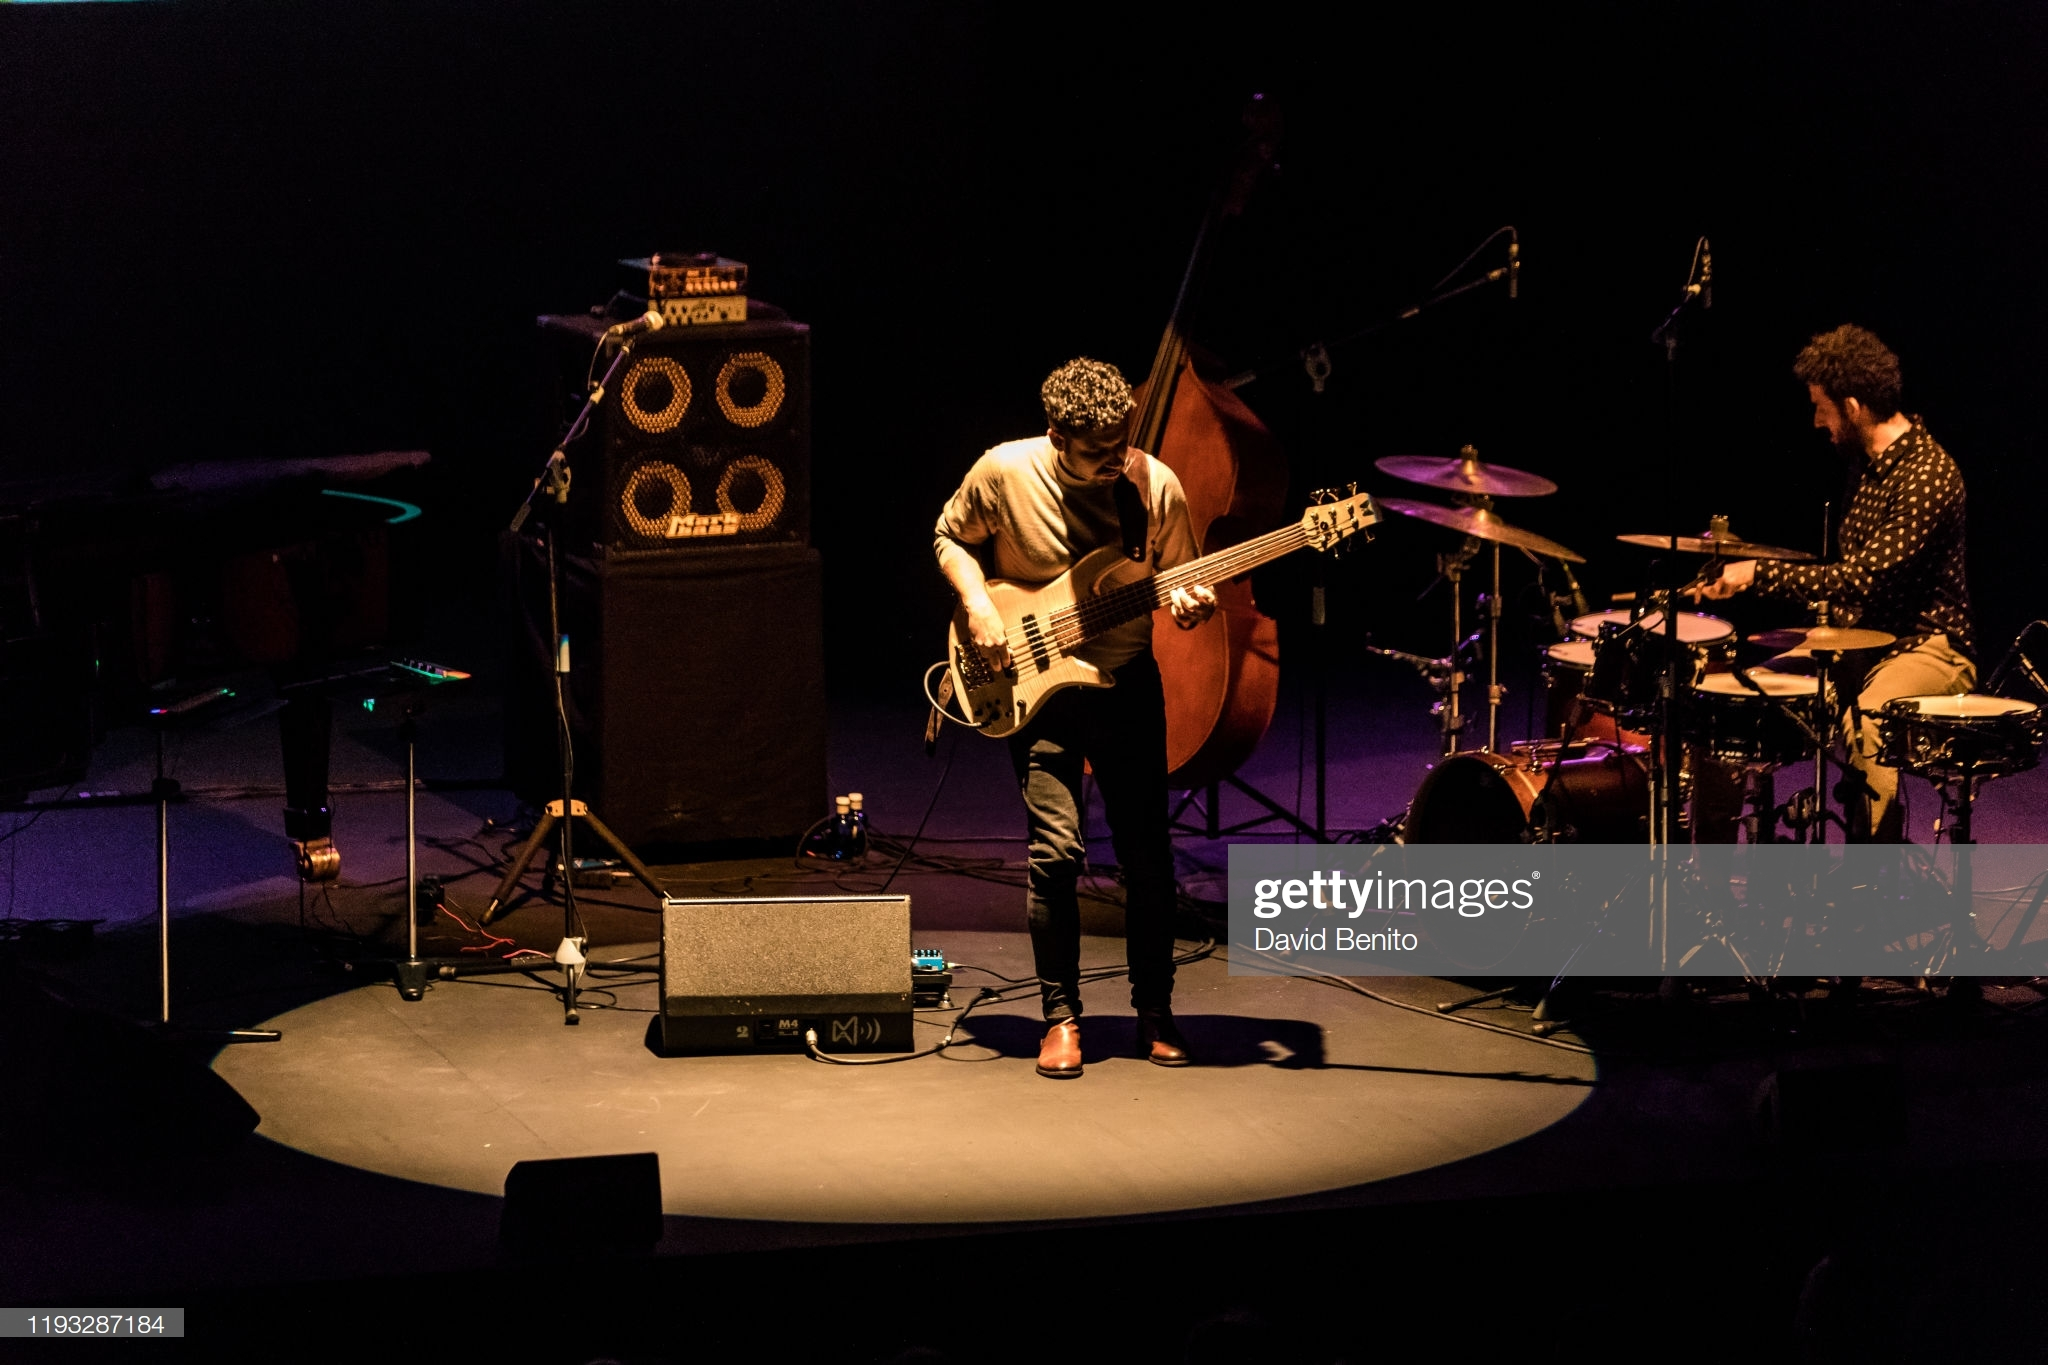 gettyimages-1193287184-2048x2048